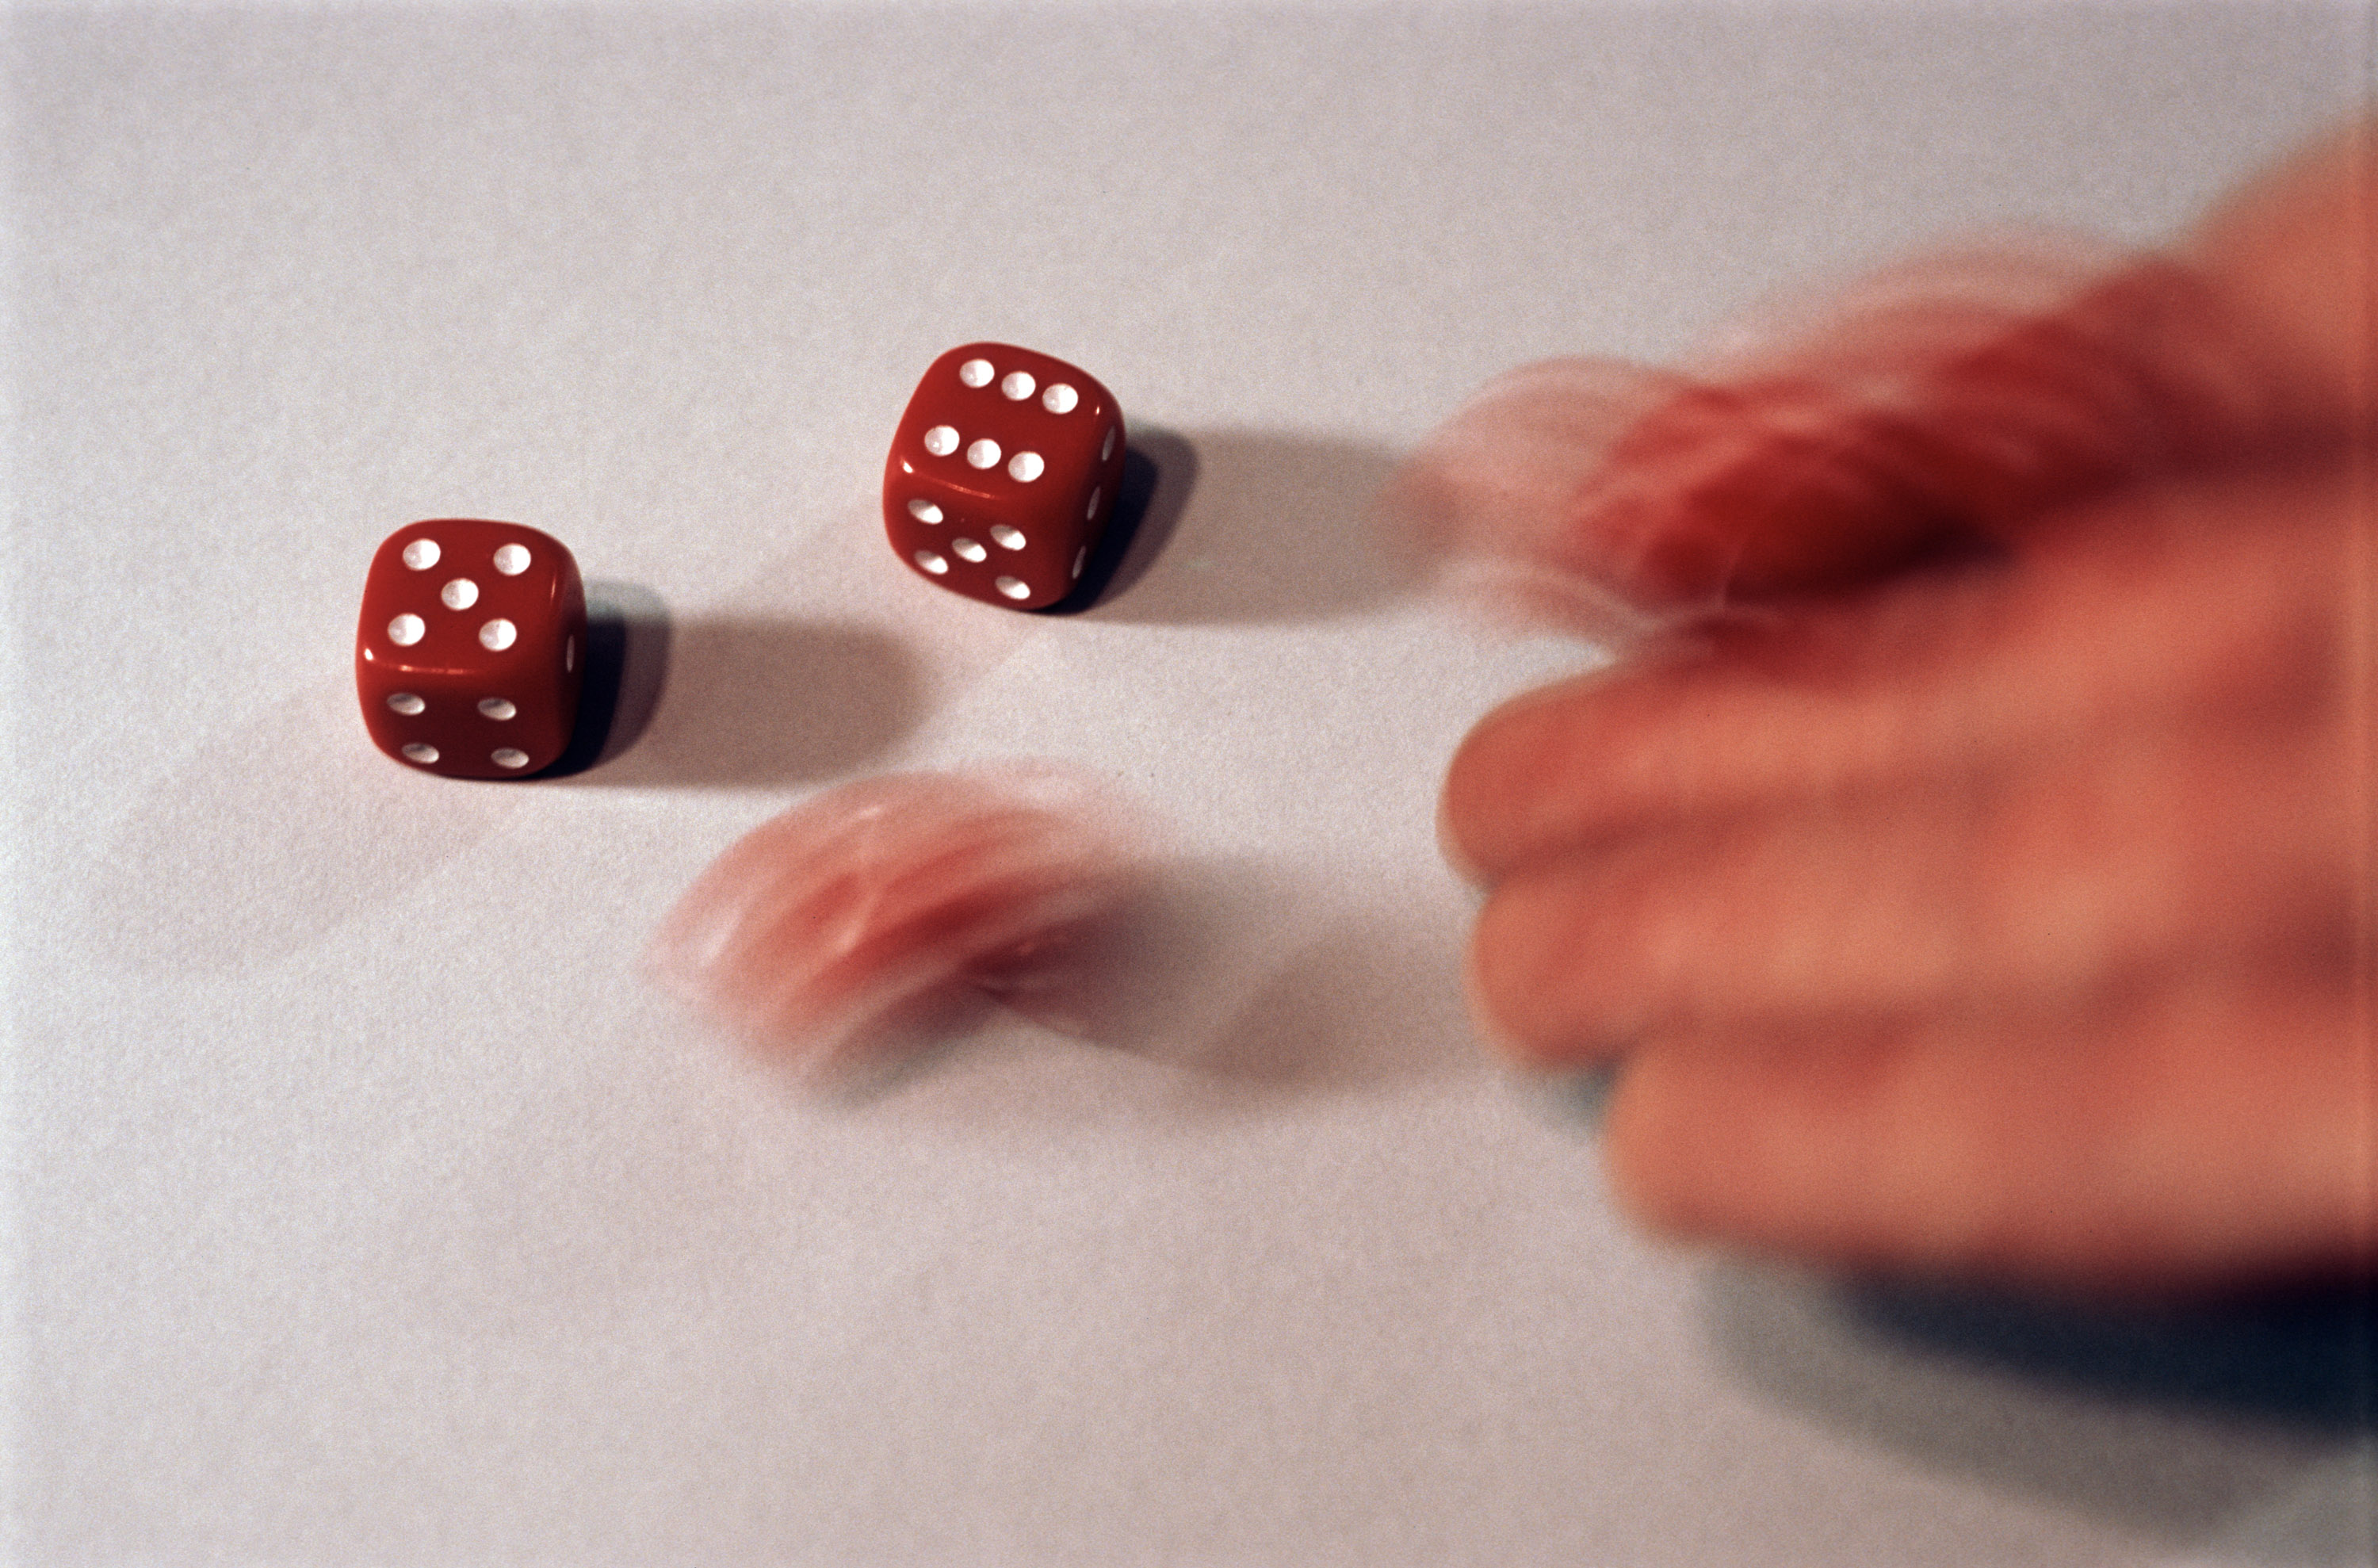 christmas board games, a blurred hand throwing several red dice